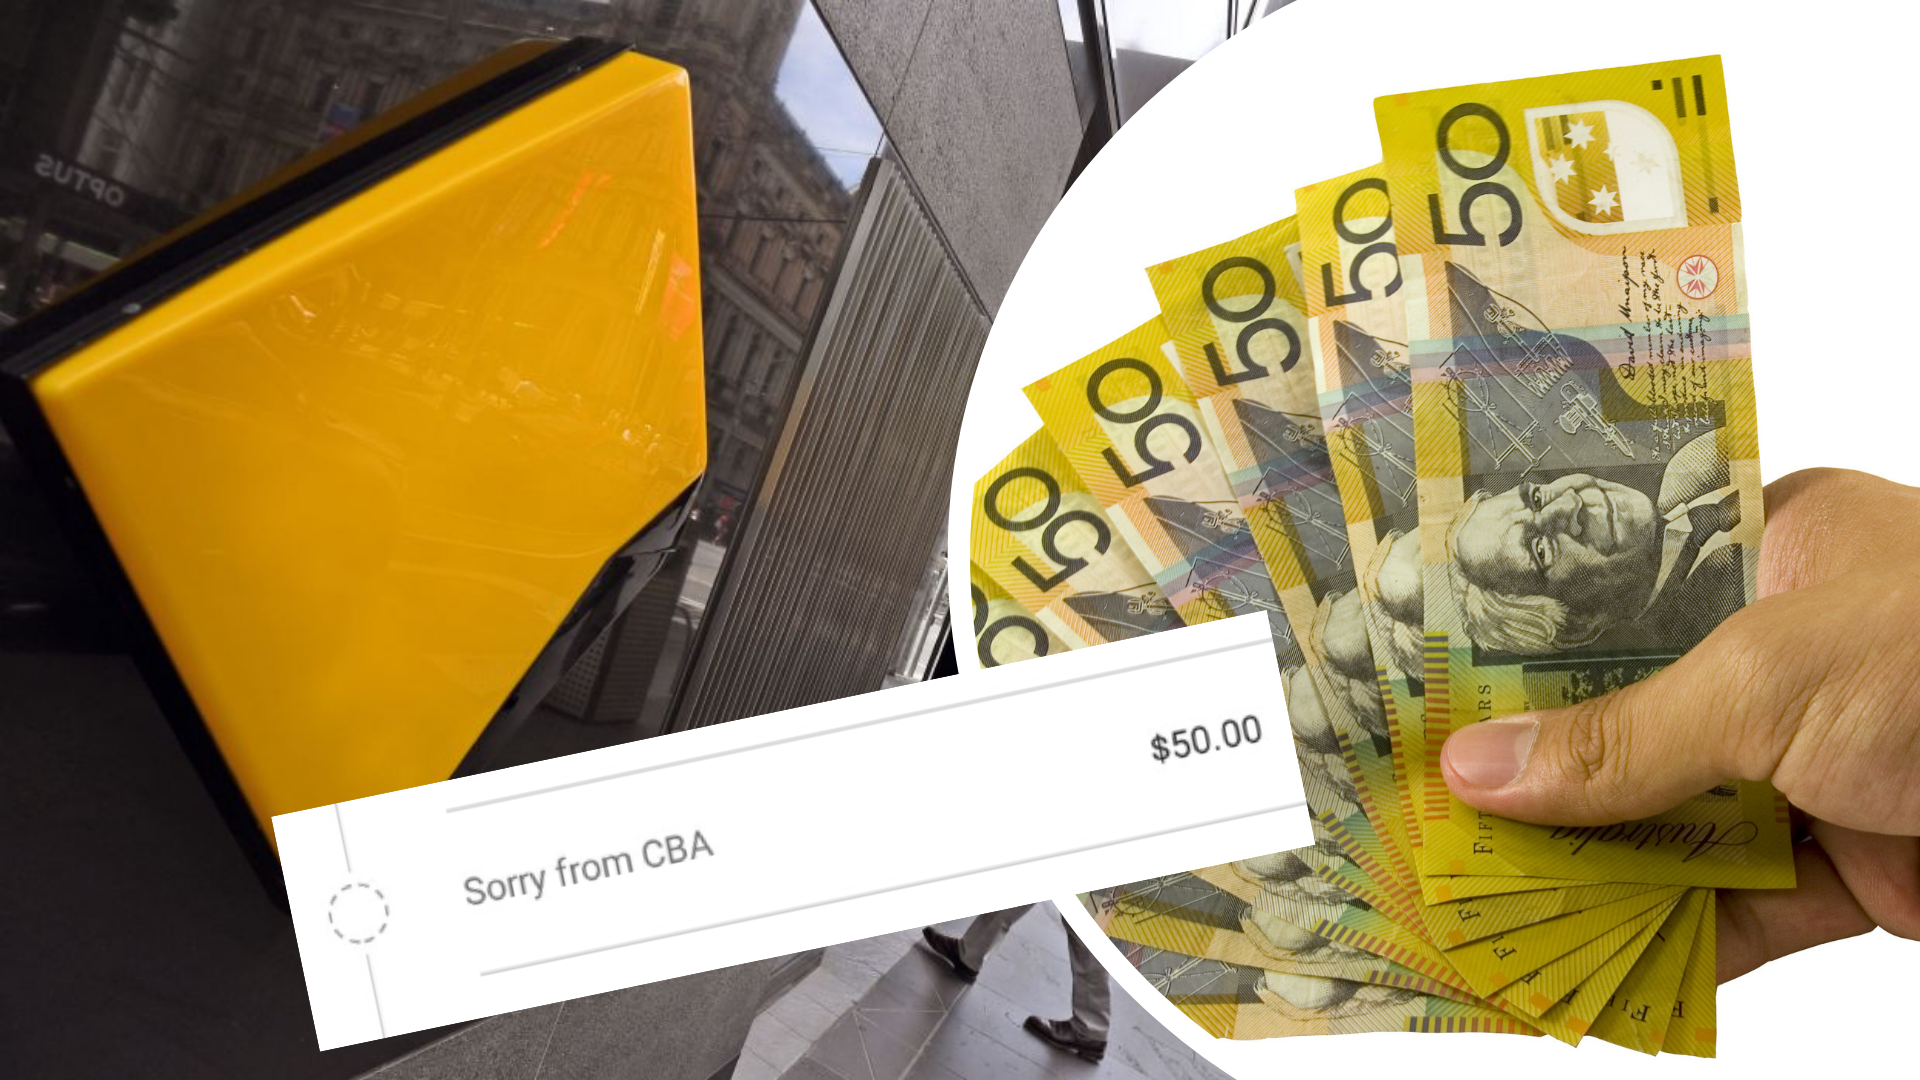 Check your account: CommBank giving customers $50 for free